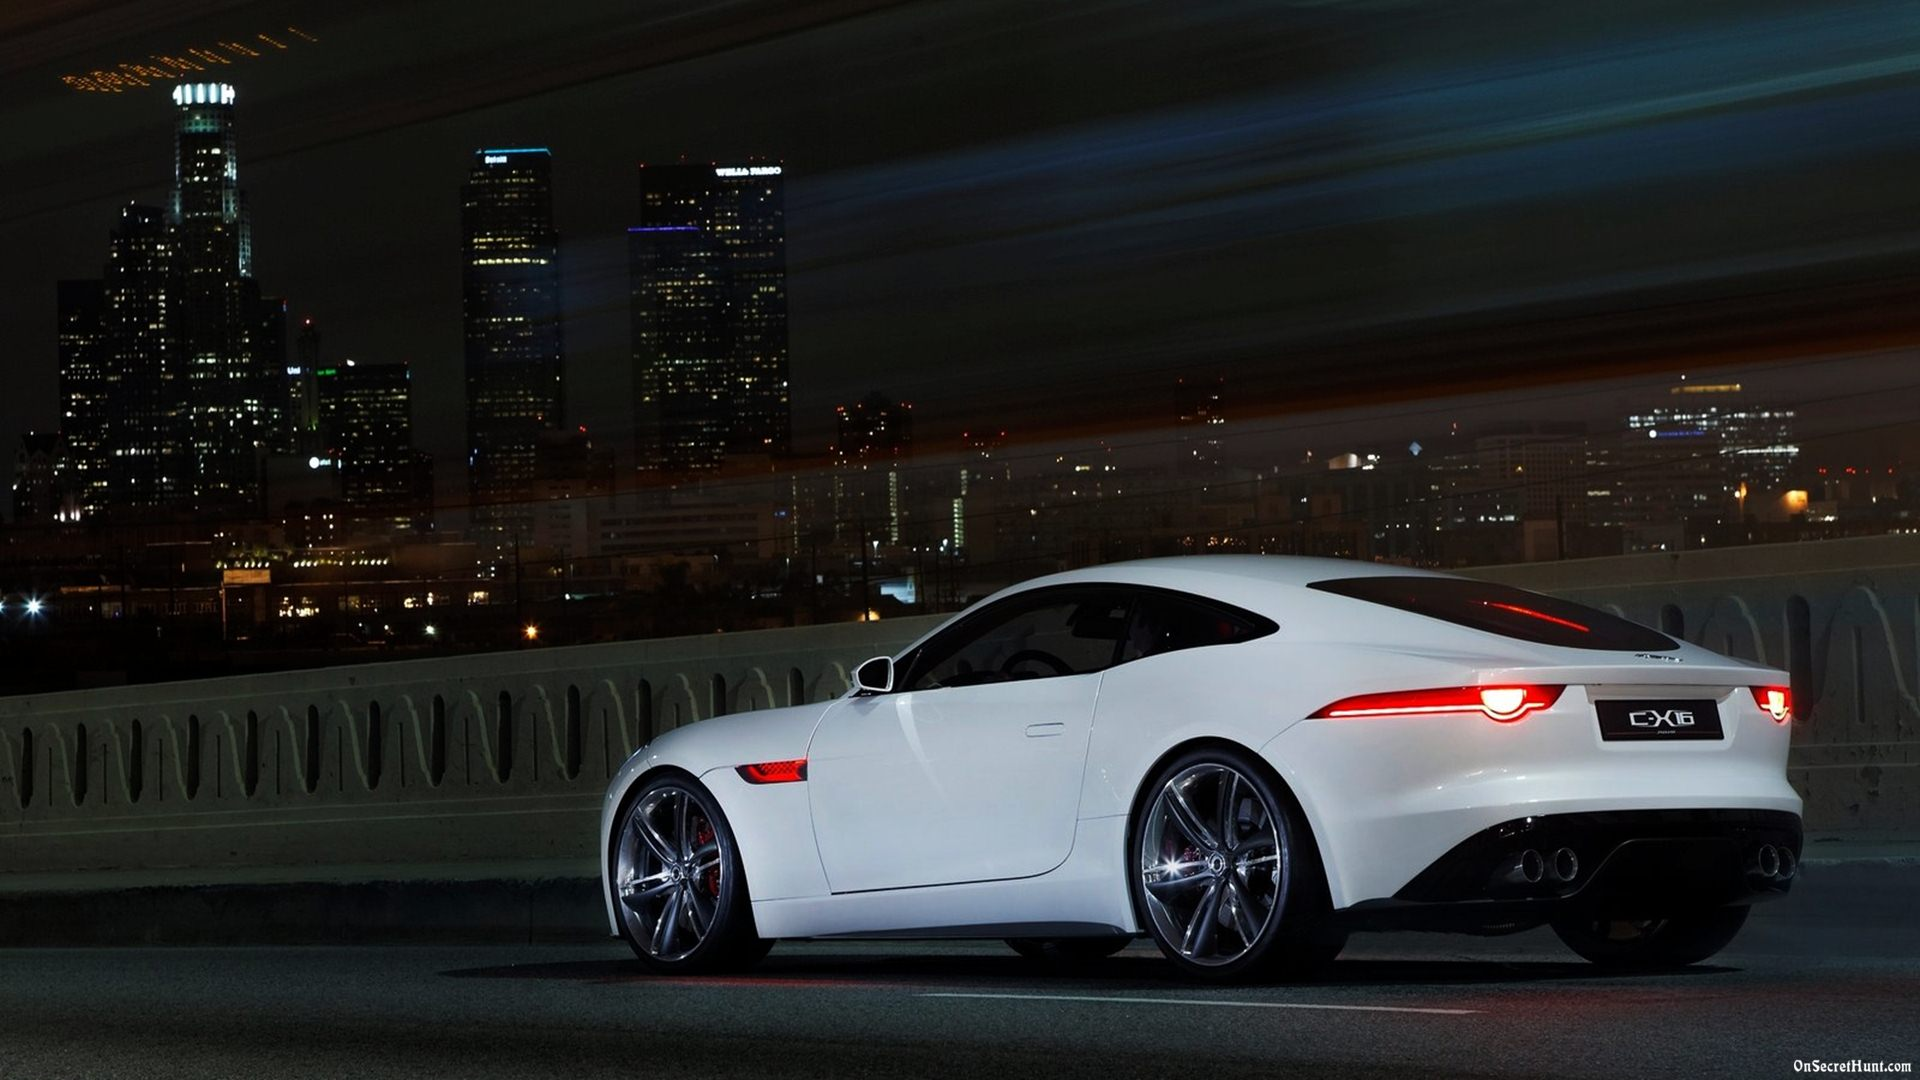 Jaguar F Type wallpaper 1920x1080 4110 1920x1080